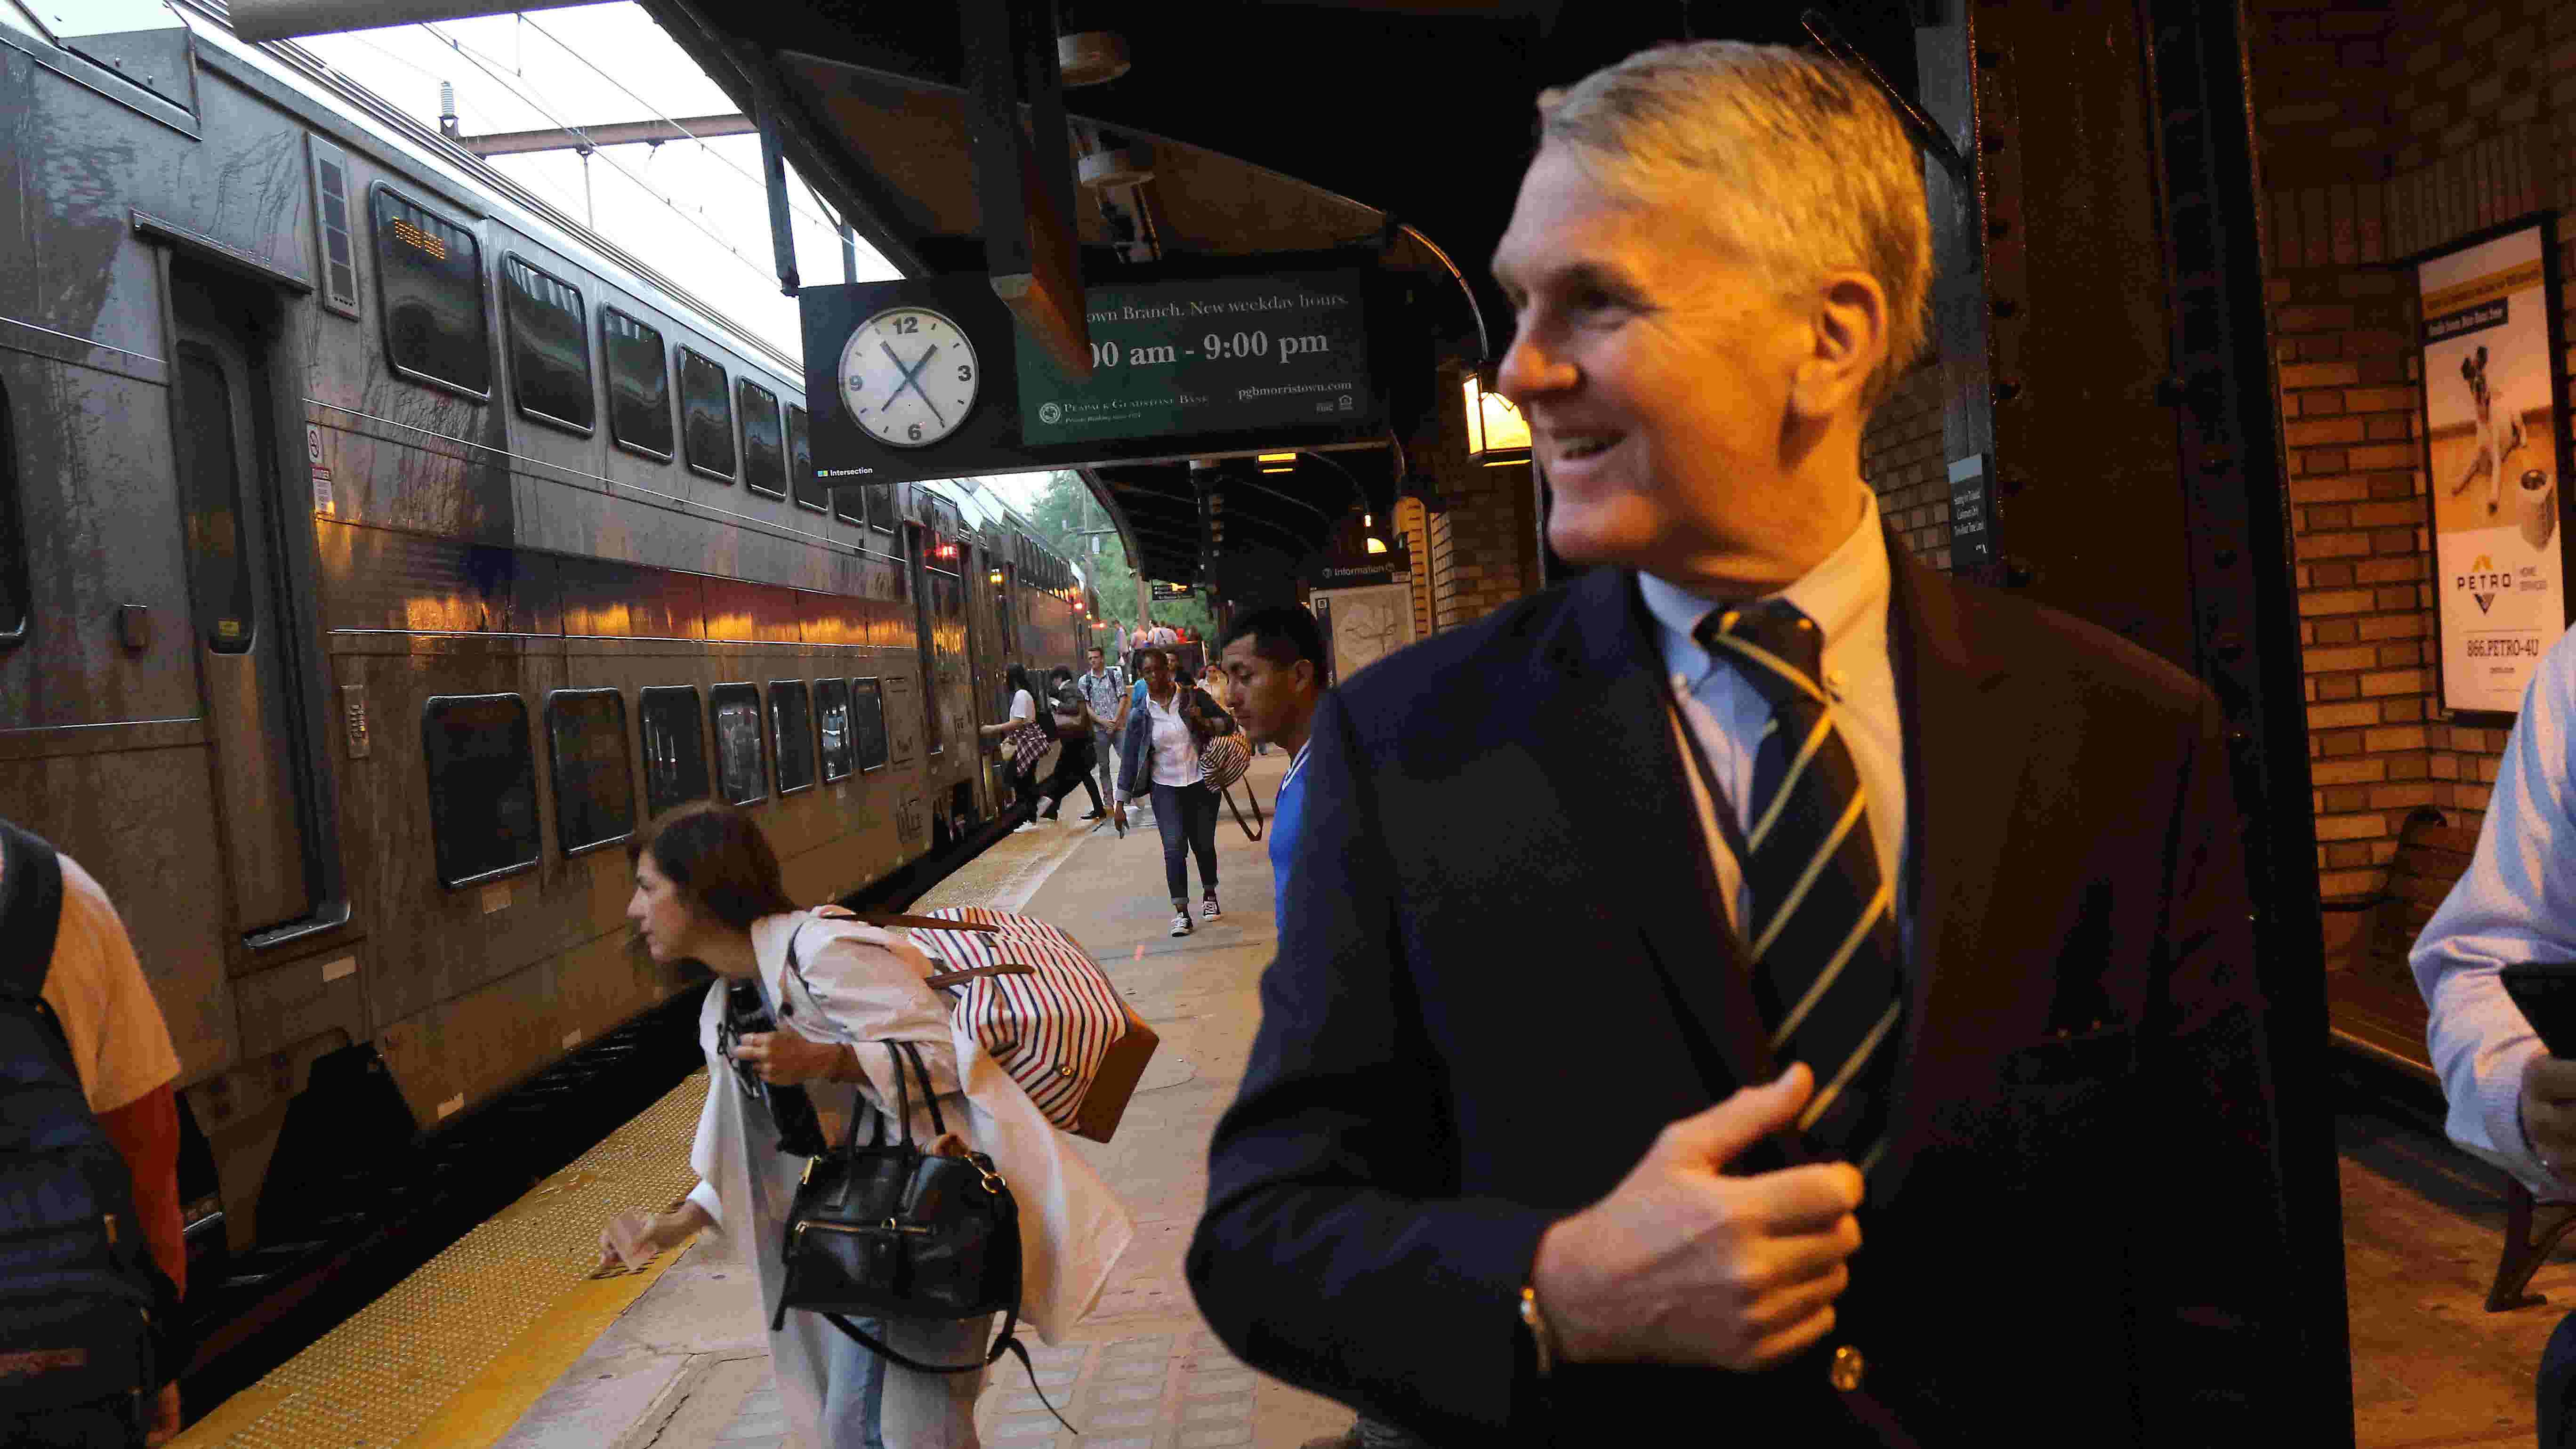 Disabled train causes half-hour delays in and out of NY Penn